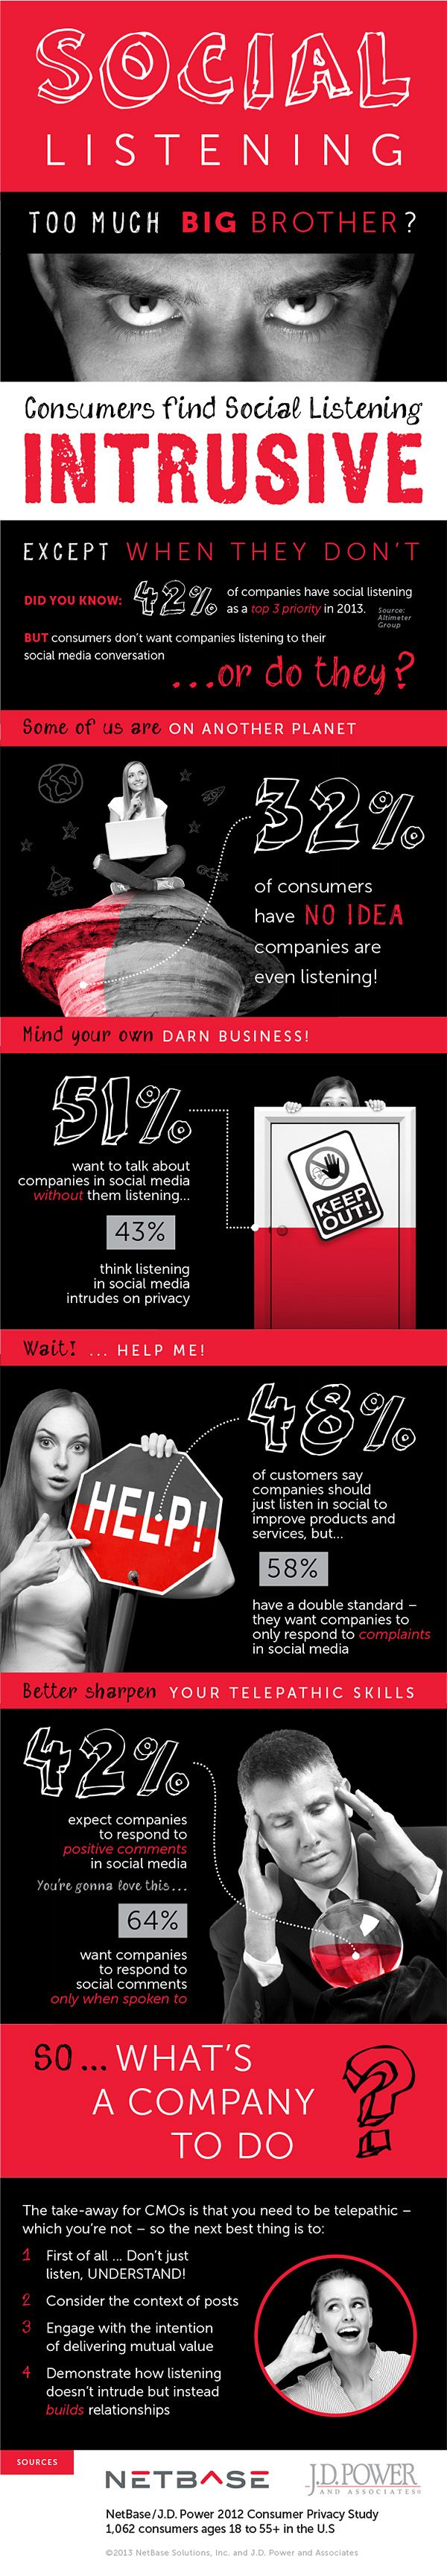 Are businesses invading consumer privacy by listening to social media conversations?